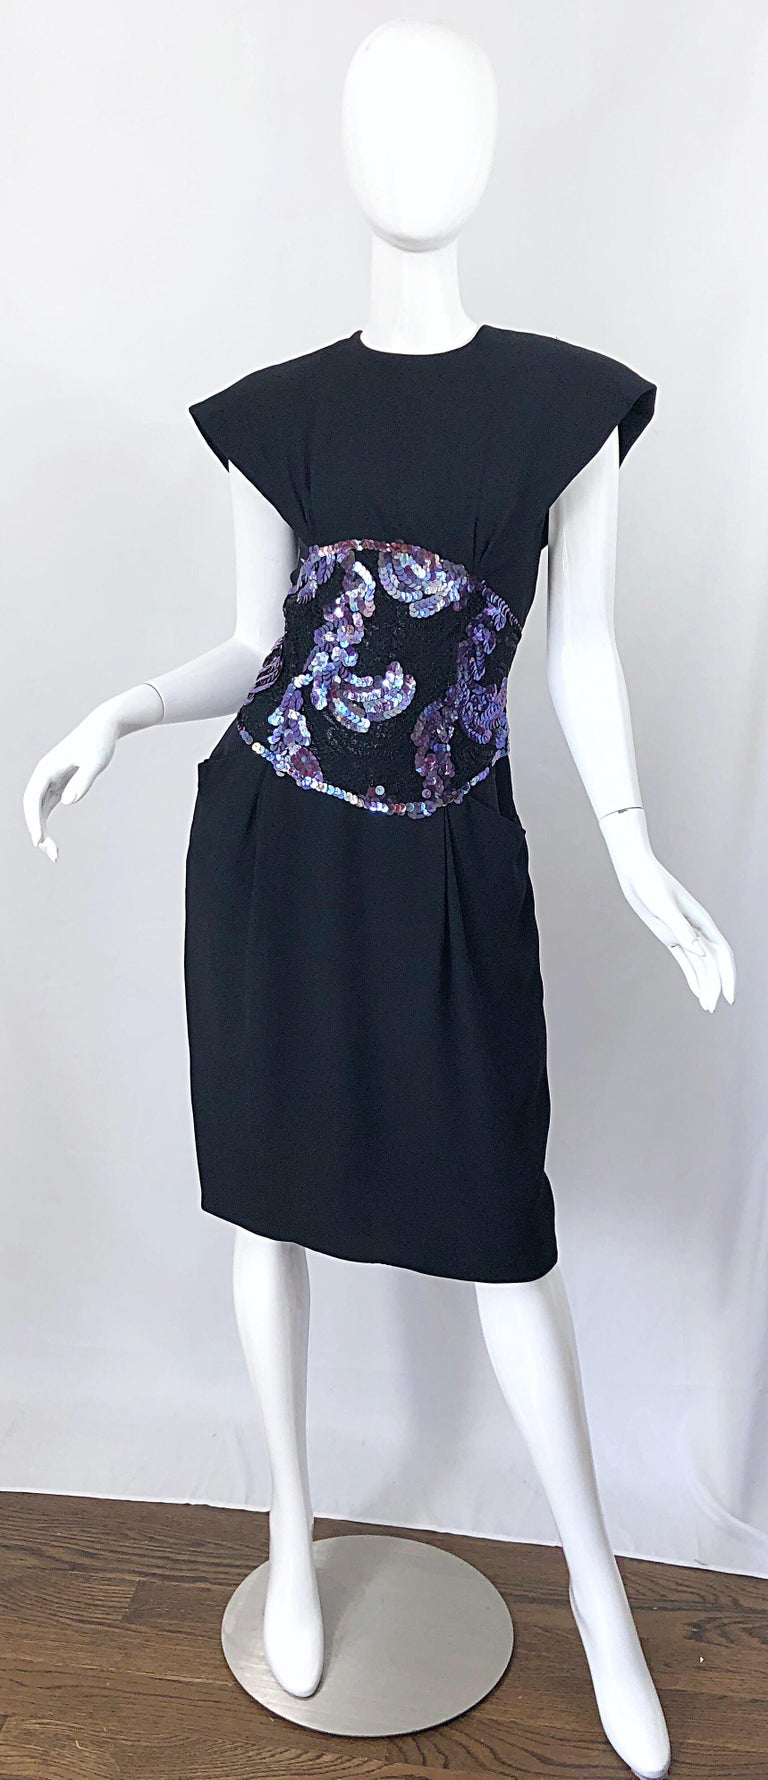 Avant Garde vintage GEOFFREY BEENE black silk, lace and purple sequin cocktail dress! Features statement worthy strong shoulder with shoulder pads that could easily be removed, if desired. Super flattering and forgiving fit that looks great on many